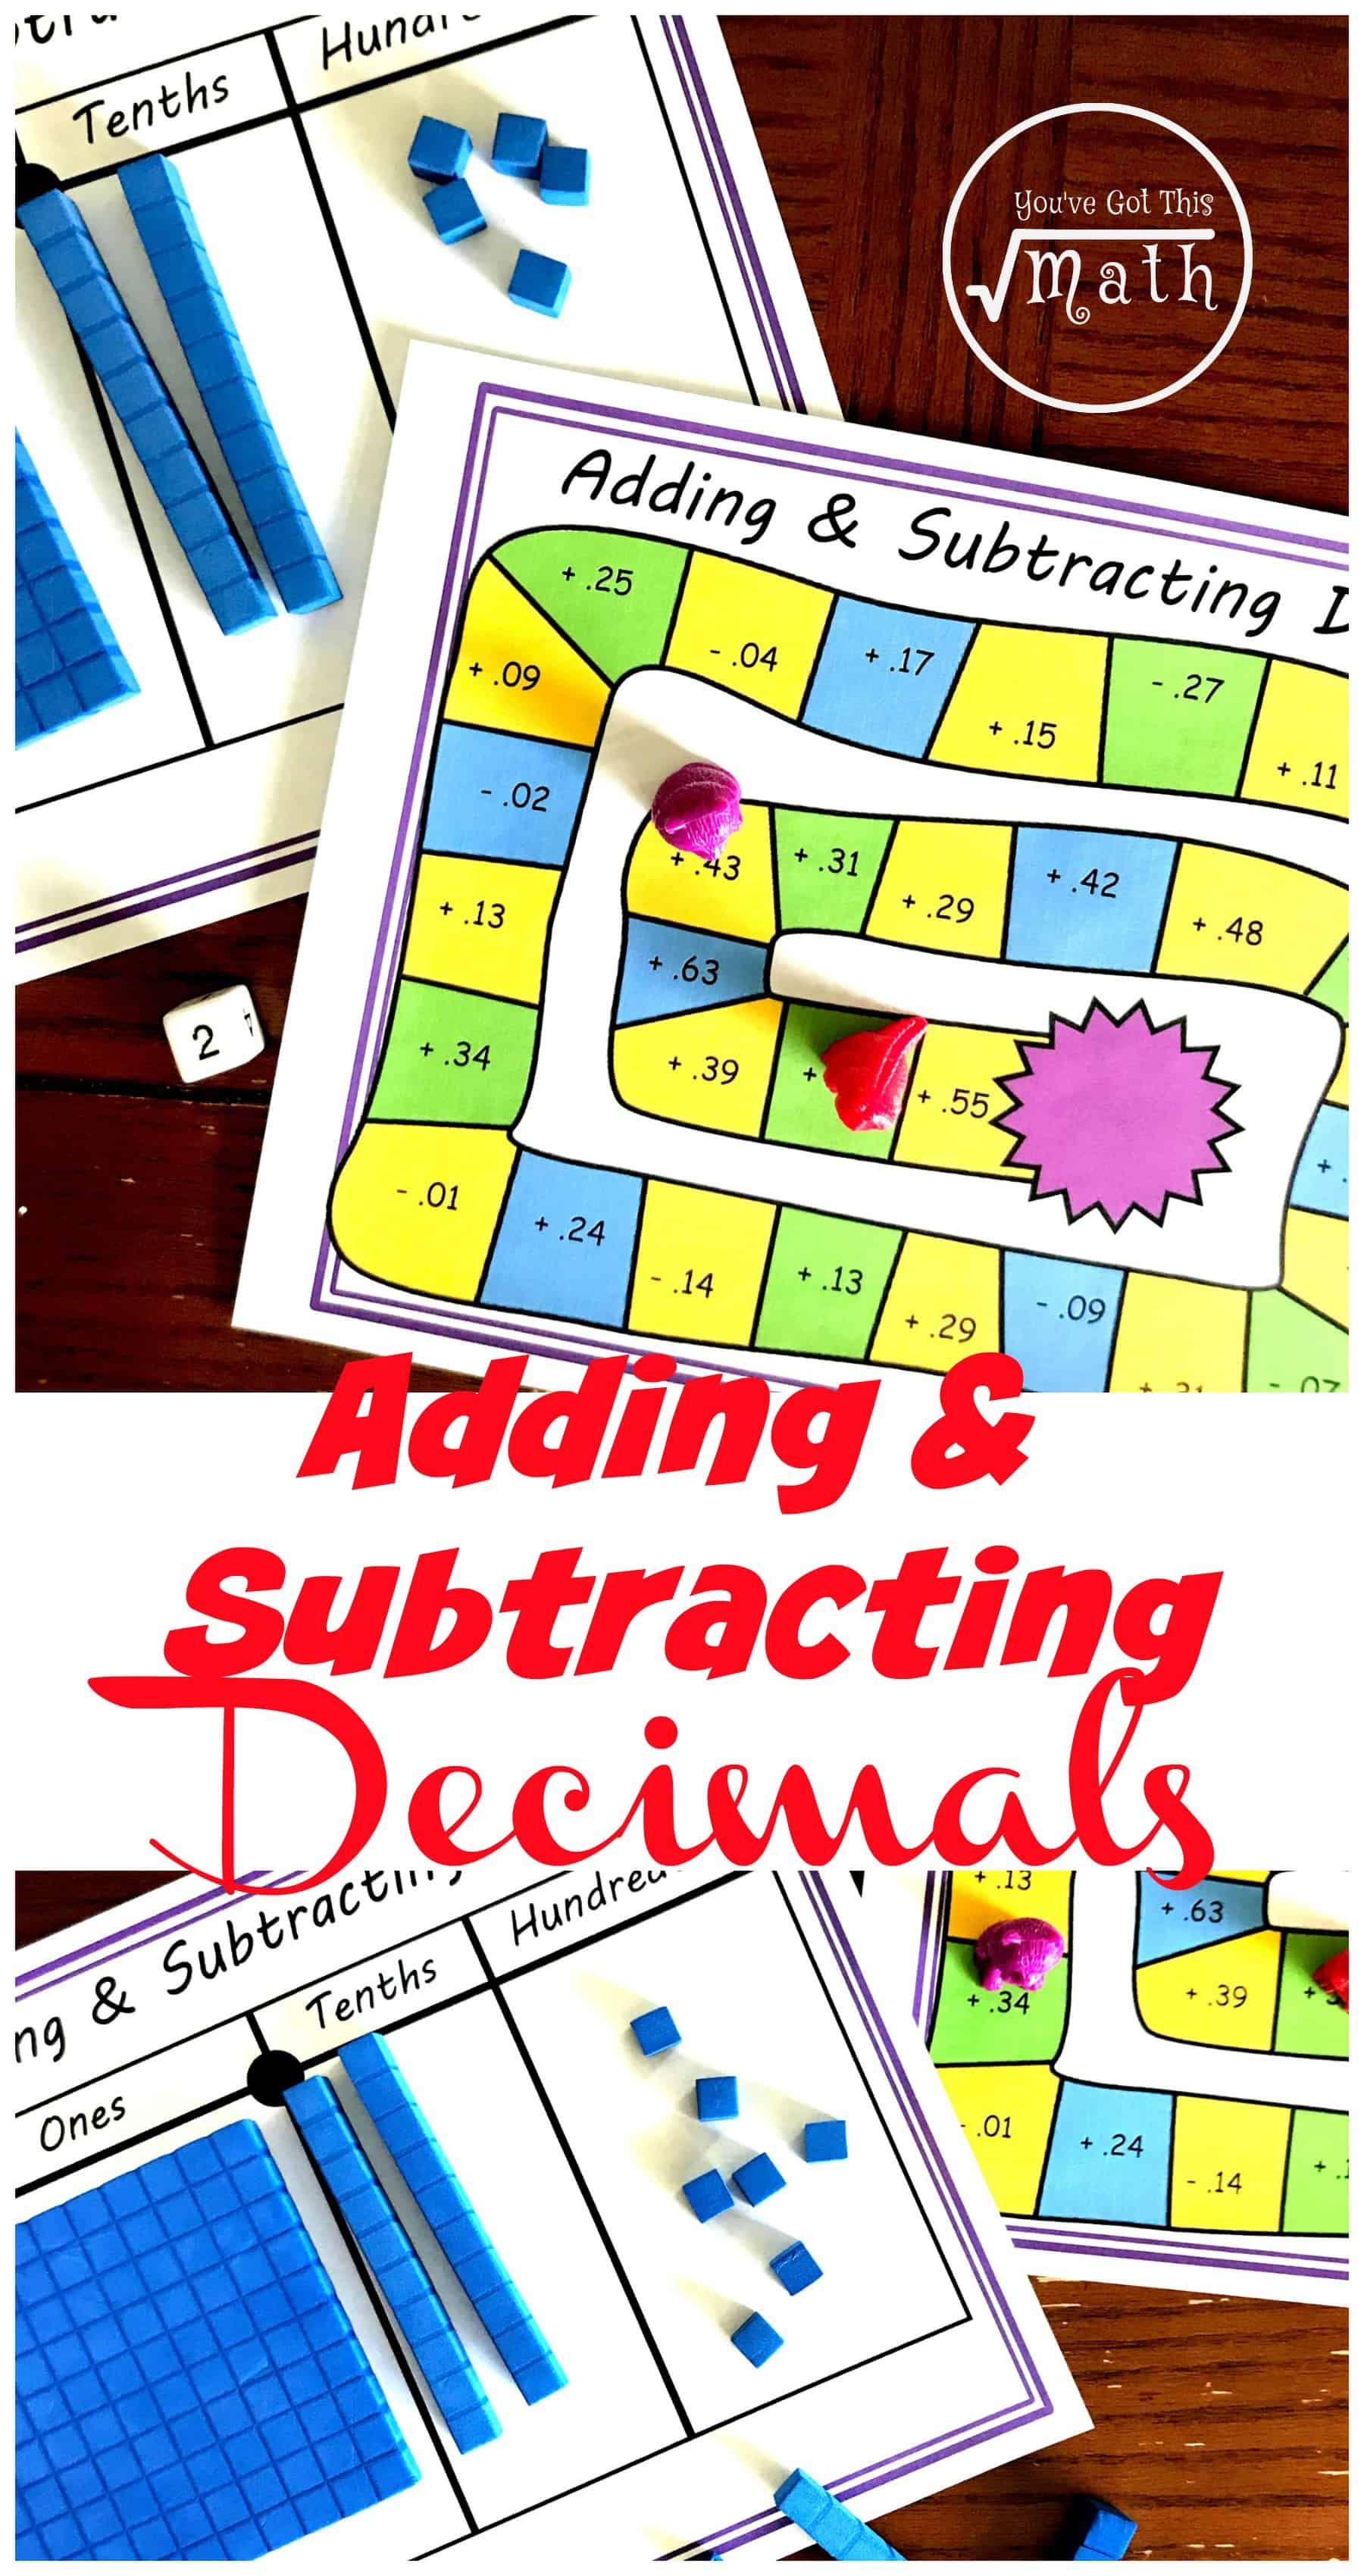 Grab this free adding and subtracting decimal game to allow children more practice at adding and subtracting decimals using base ten blocks.